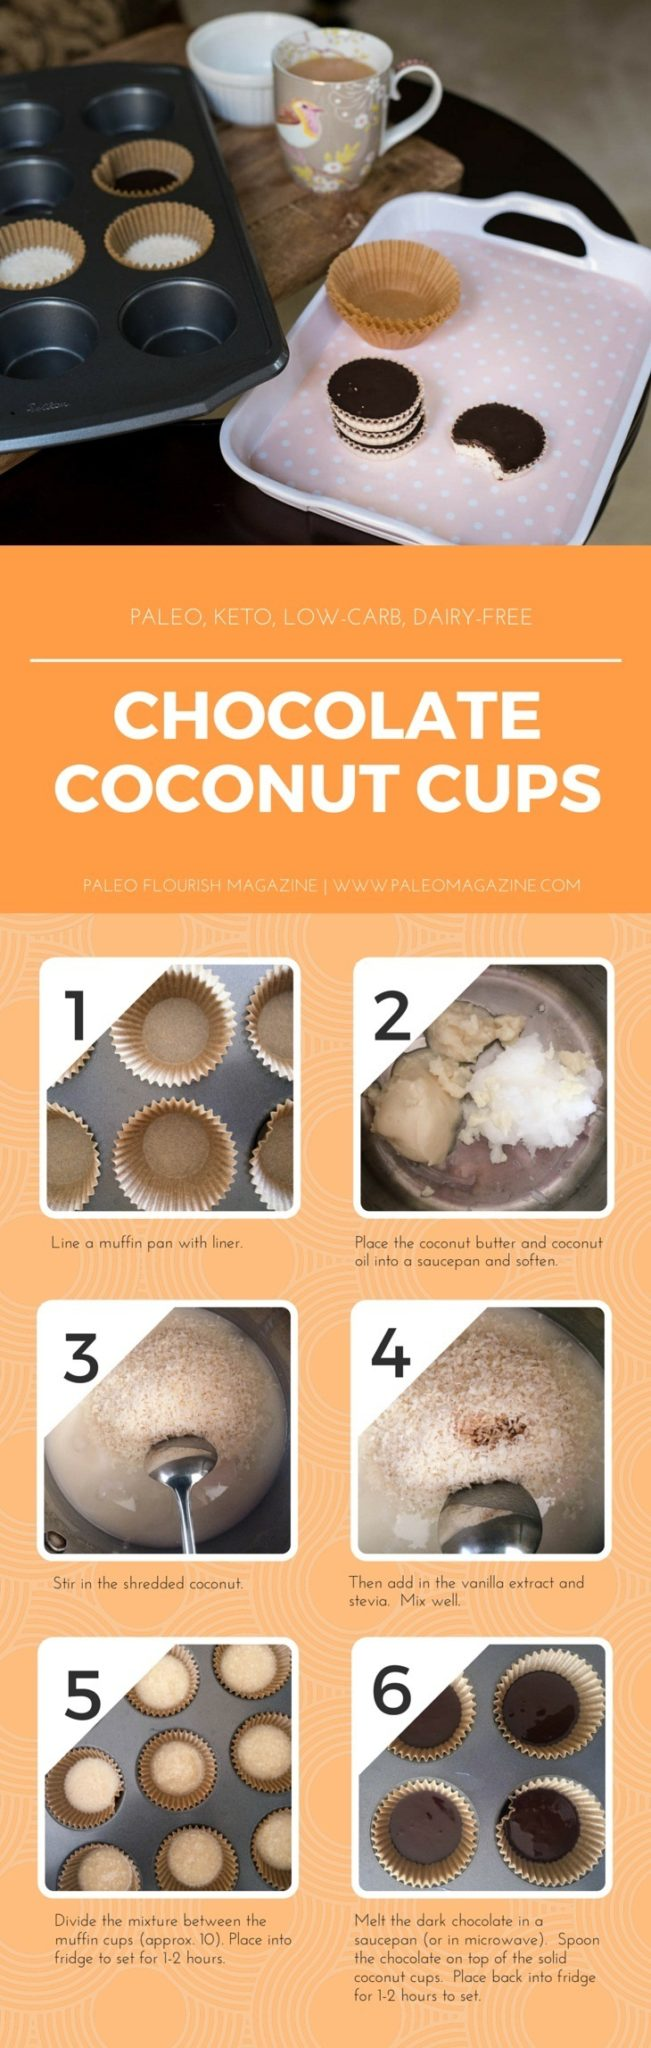 Chocolate Coconut Cups Recipe [Paleo, Keto, Low-Carb, Dairy-Free]